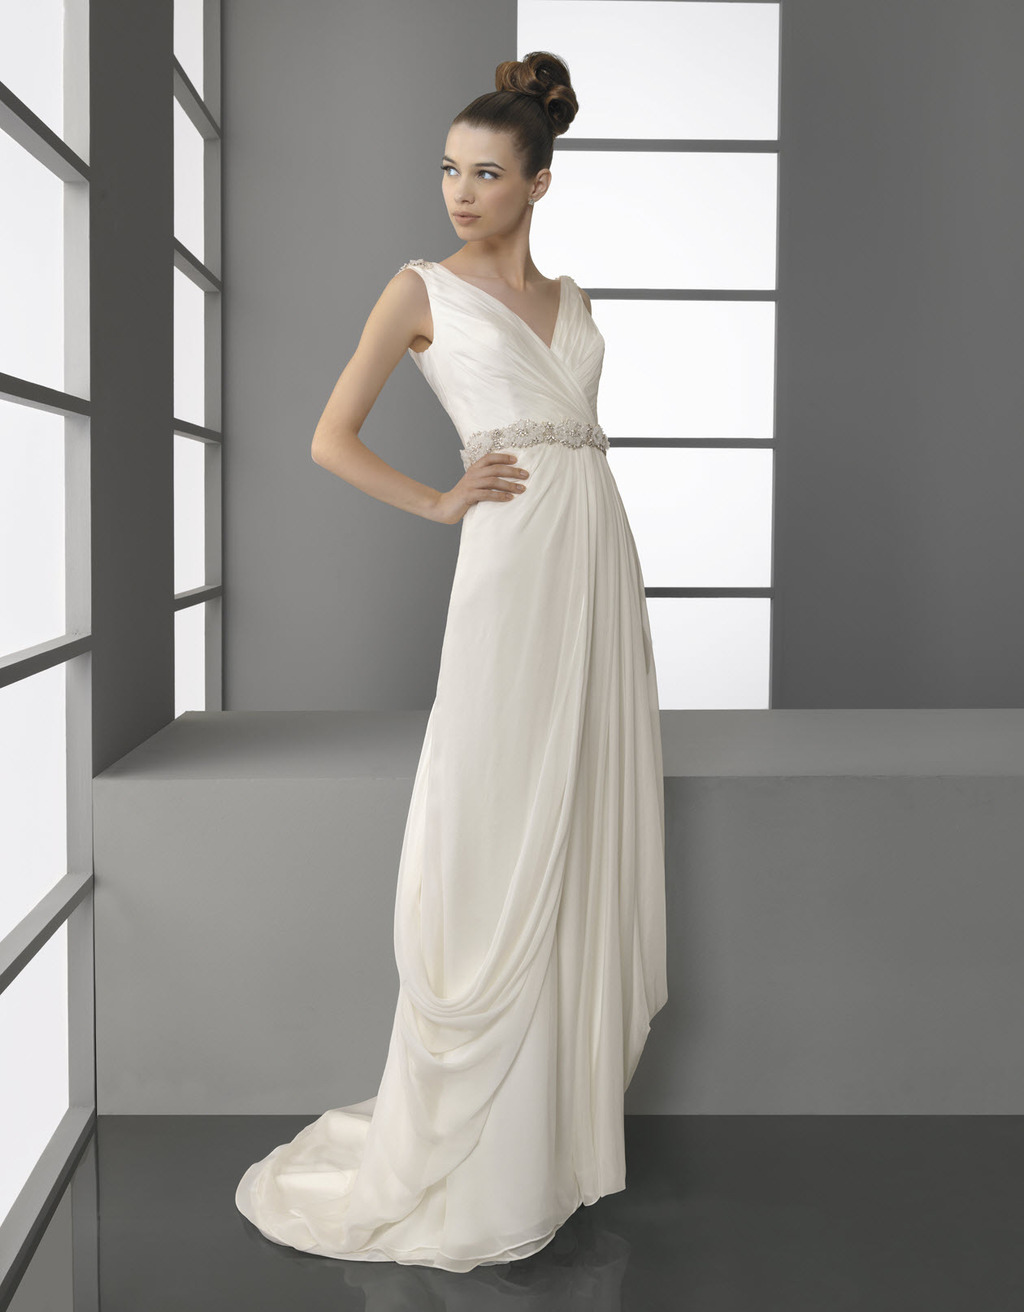 Chic ivory v-neck draped bridal gown by Aire Barcelona with beaded bridal belt